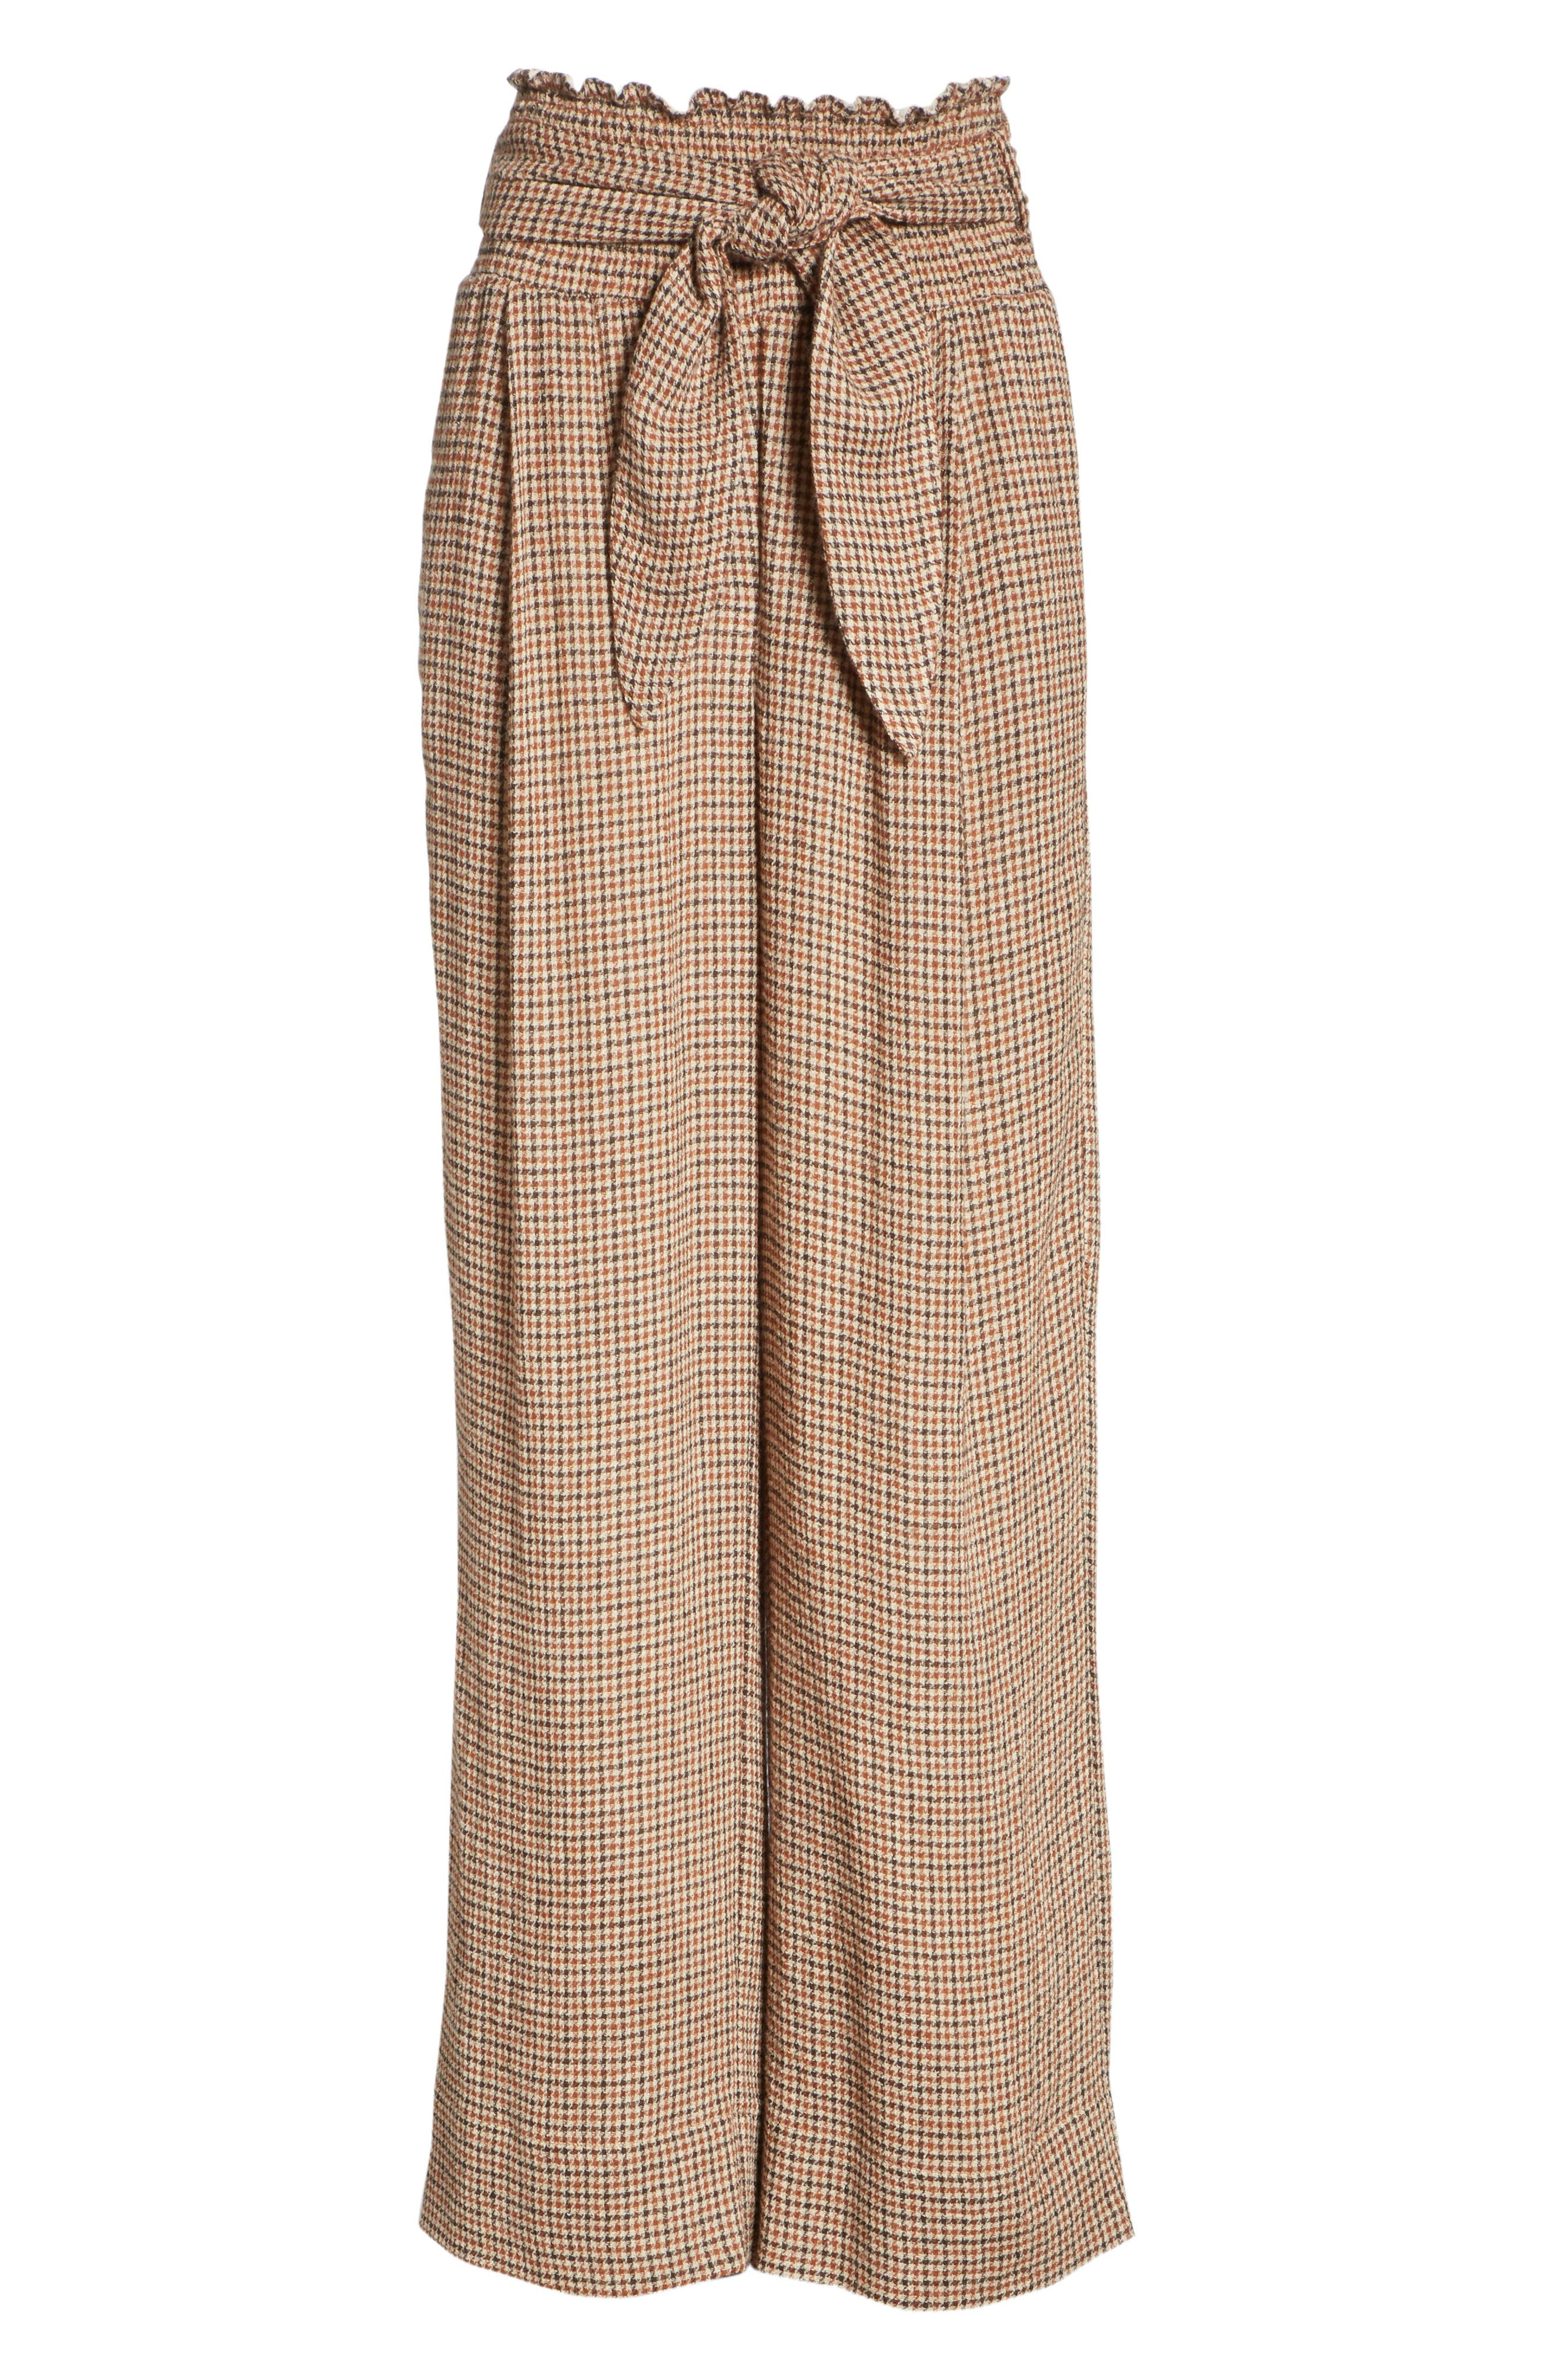 Private Houndstooth Tie Waist Pants,                             Alternate thumbnail 6, color,                             CHECK